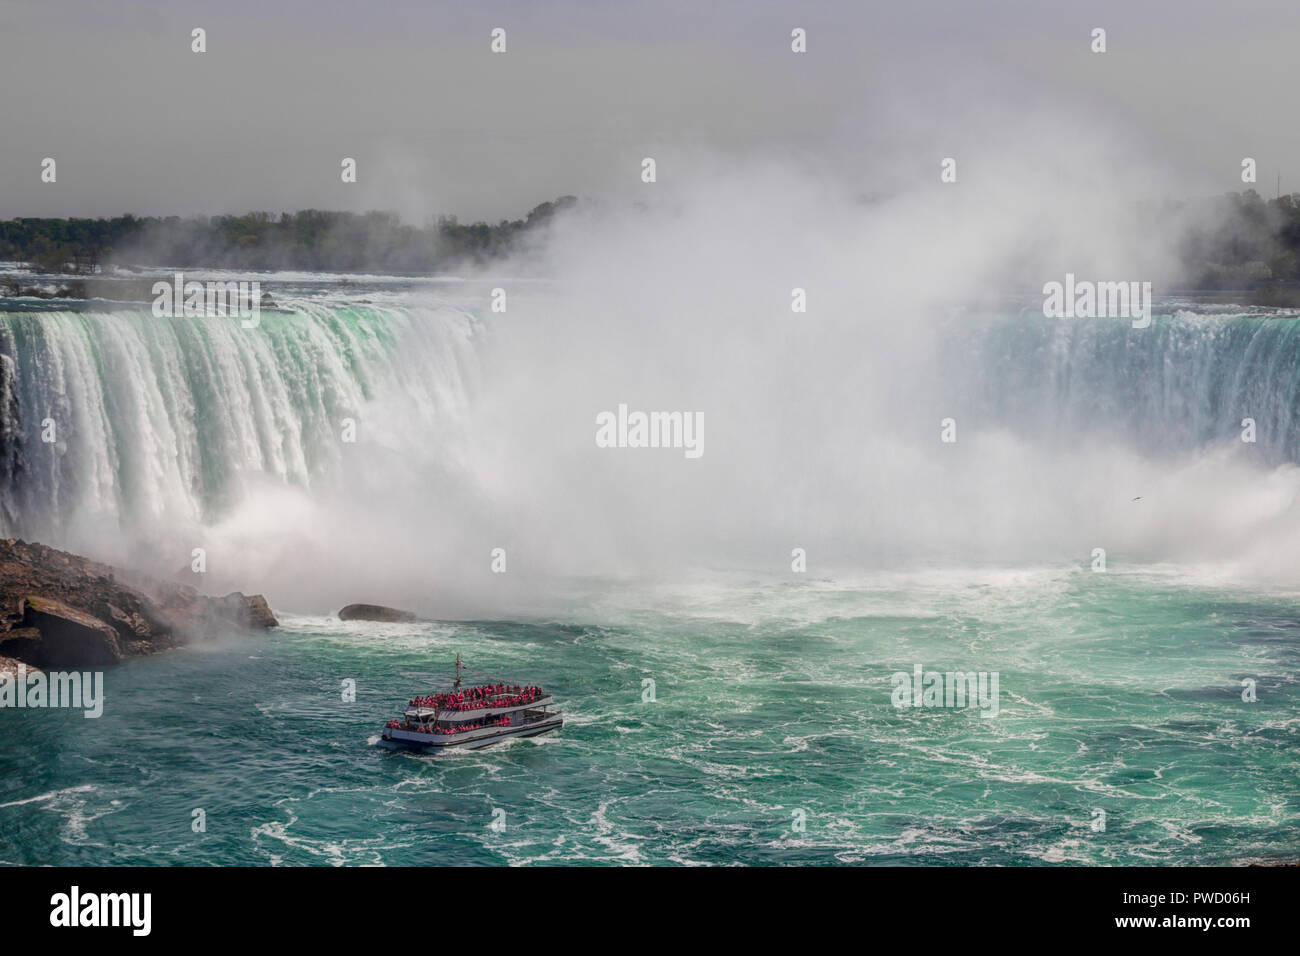 A boat at the Niagara Falls - Stock Image